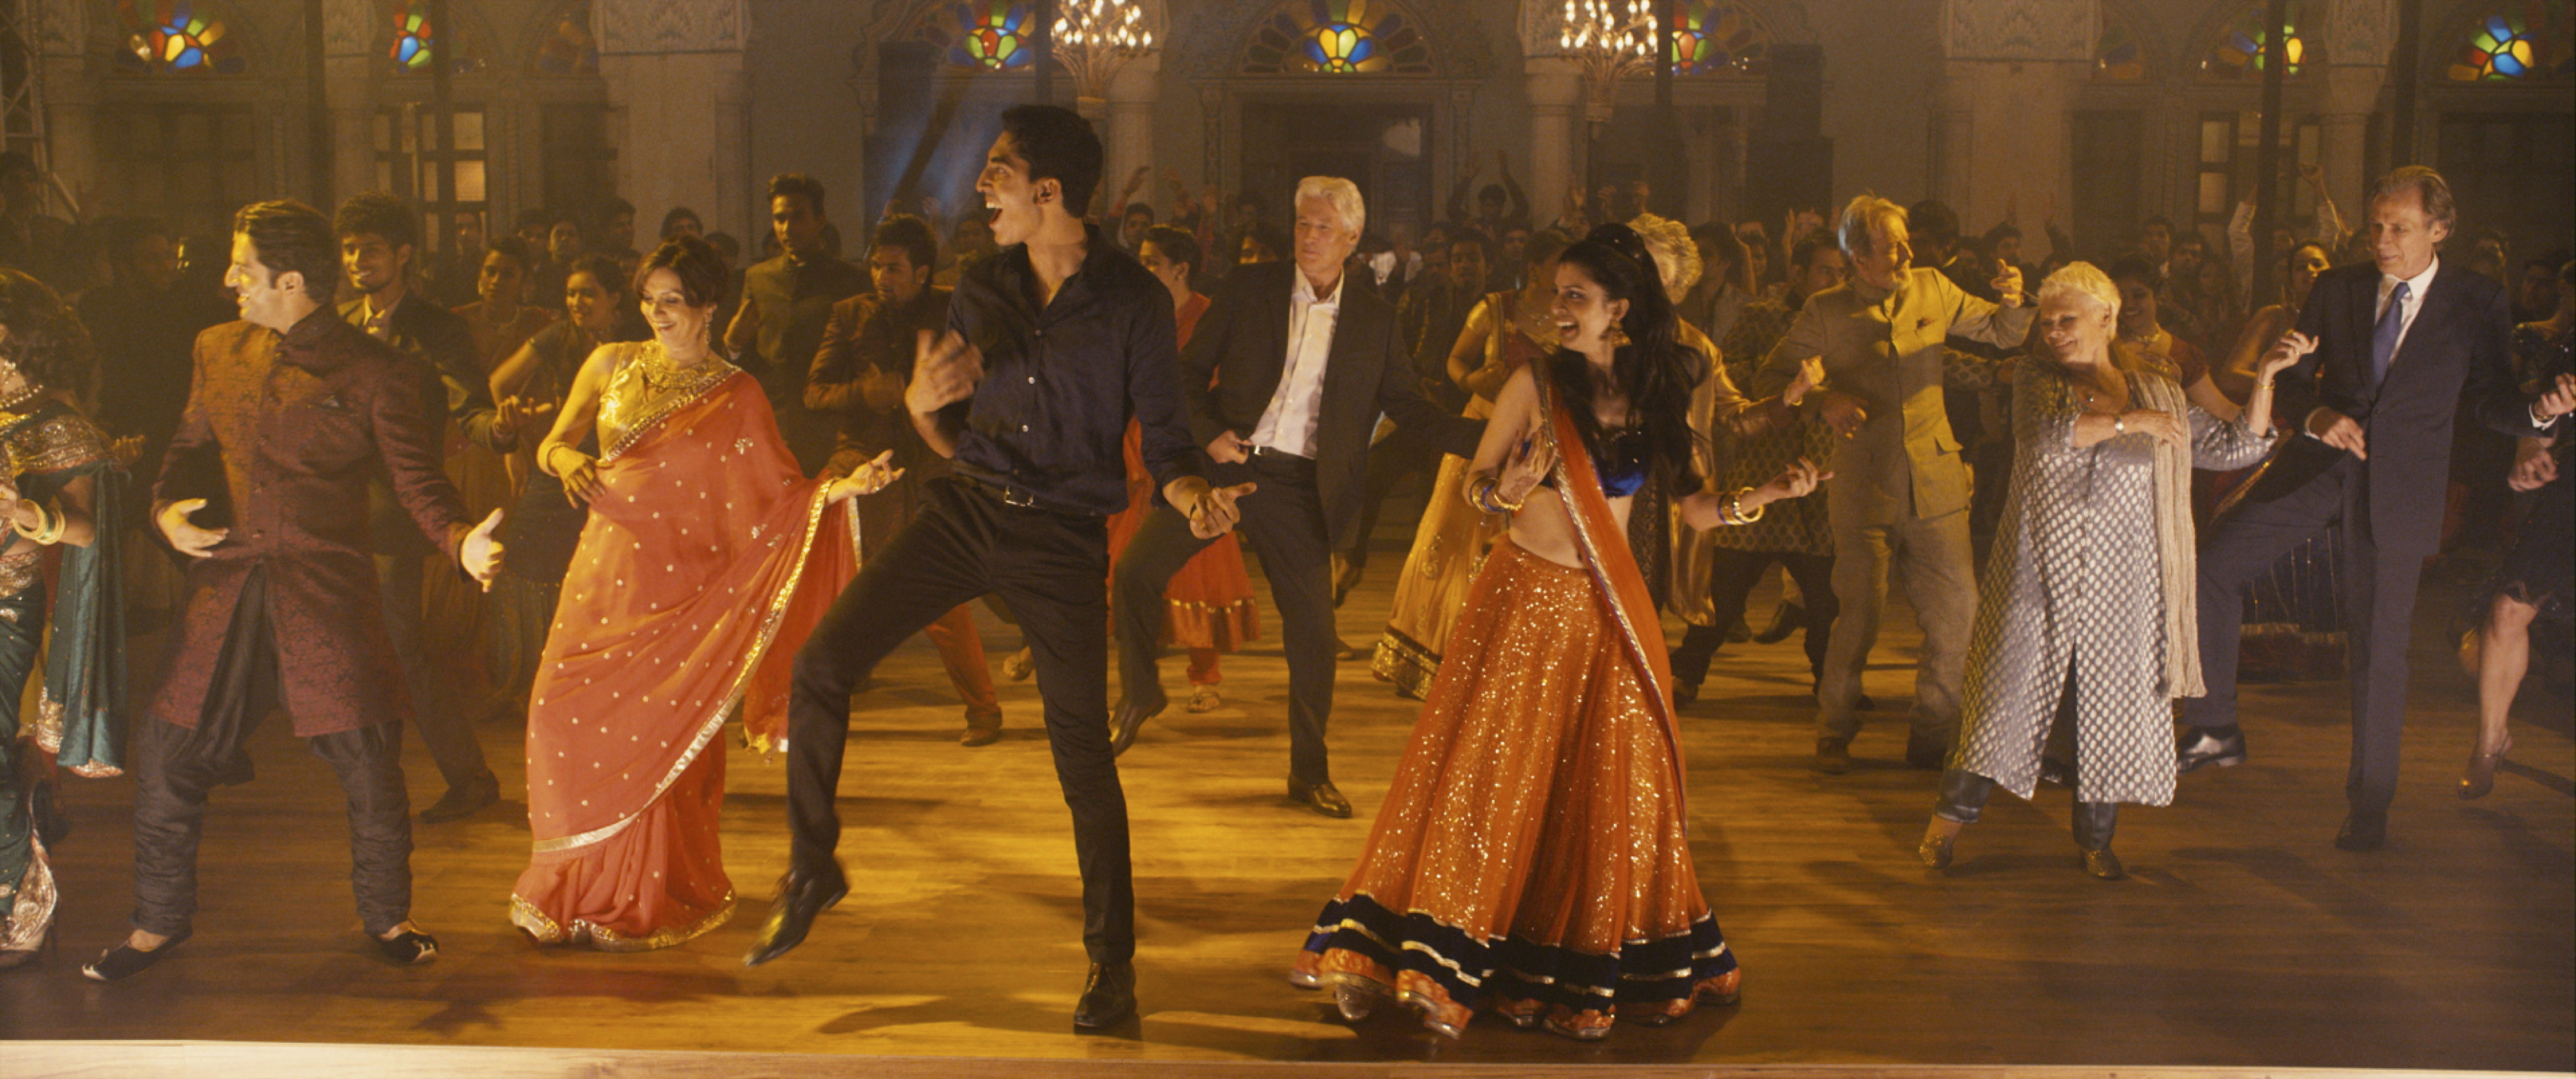 A still from The Second Best Exotic Marigold Hotel film